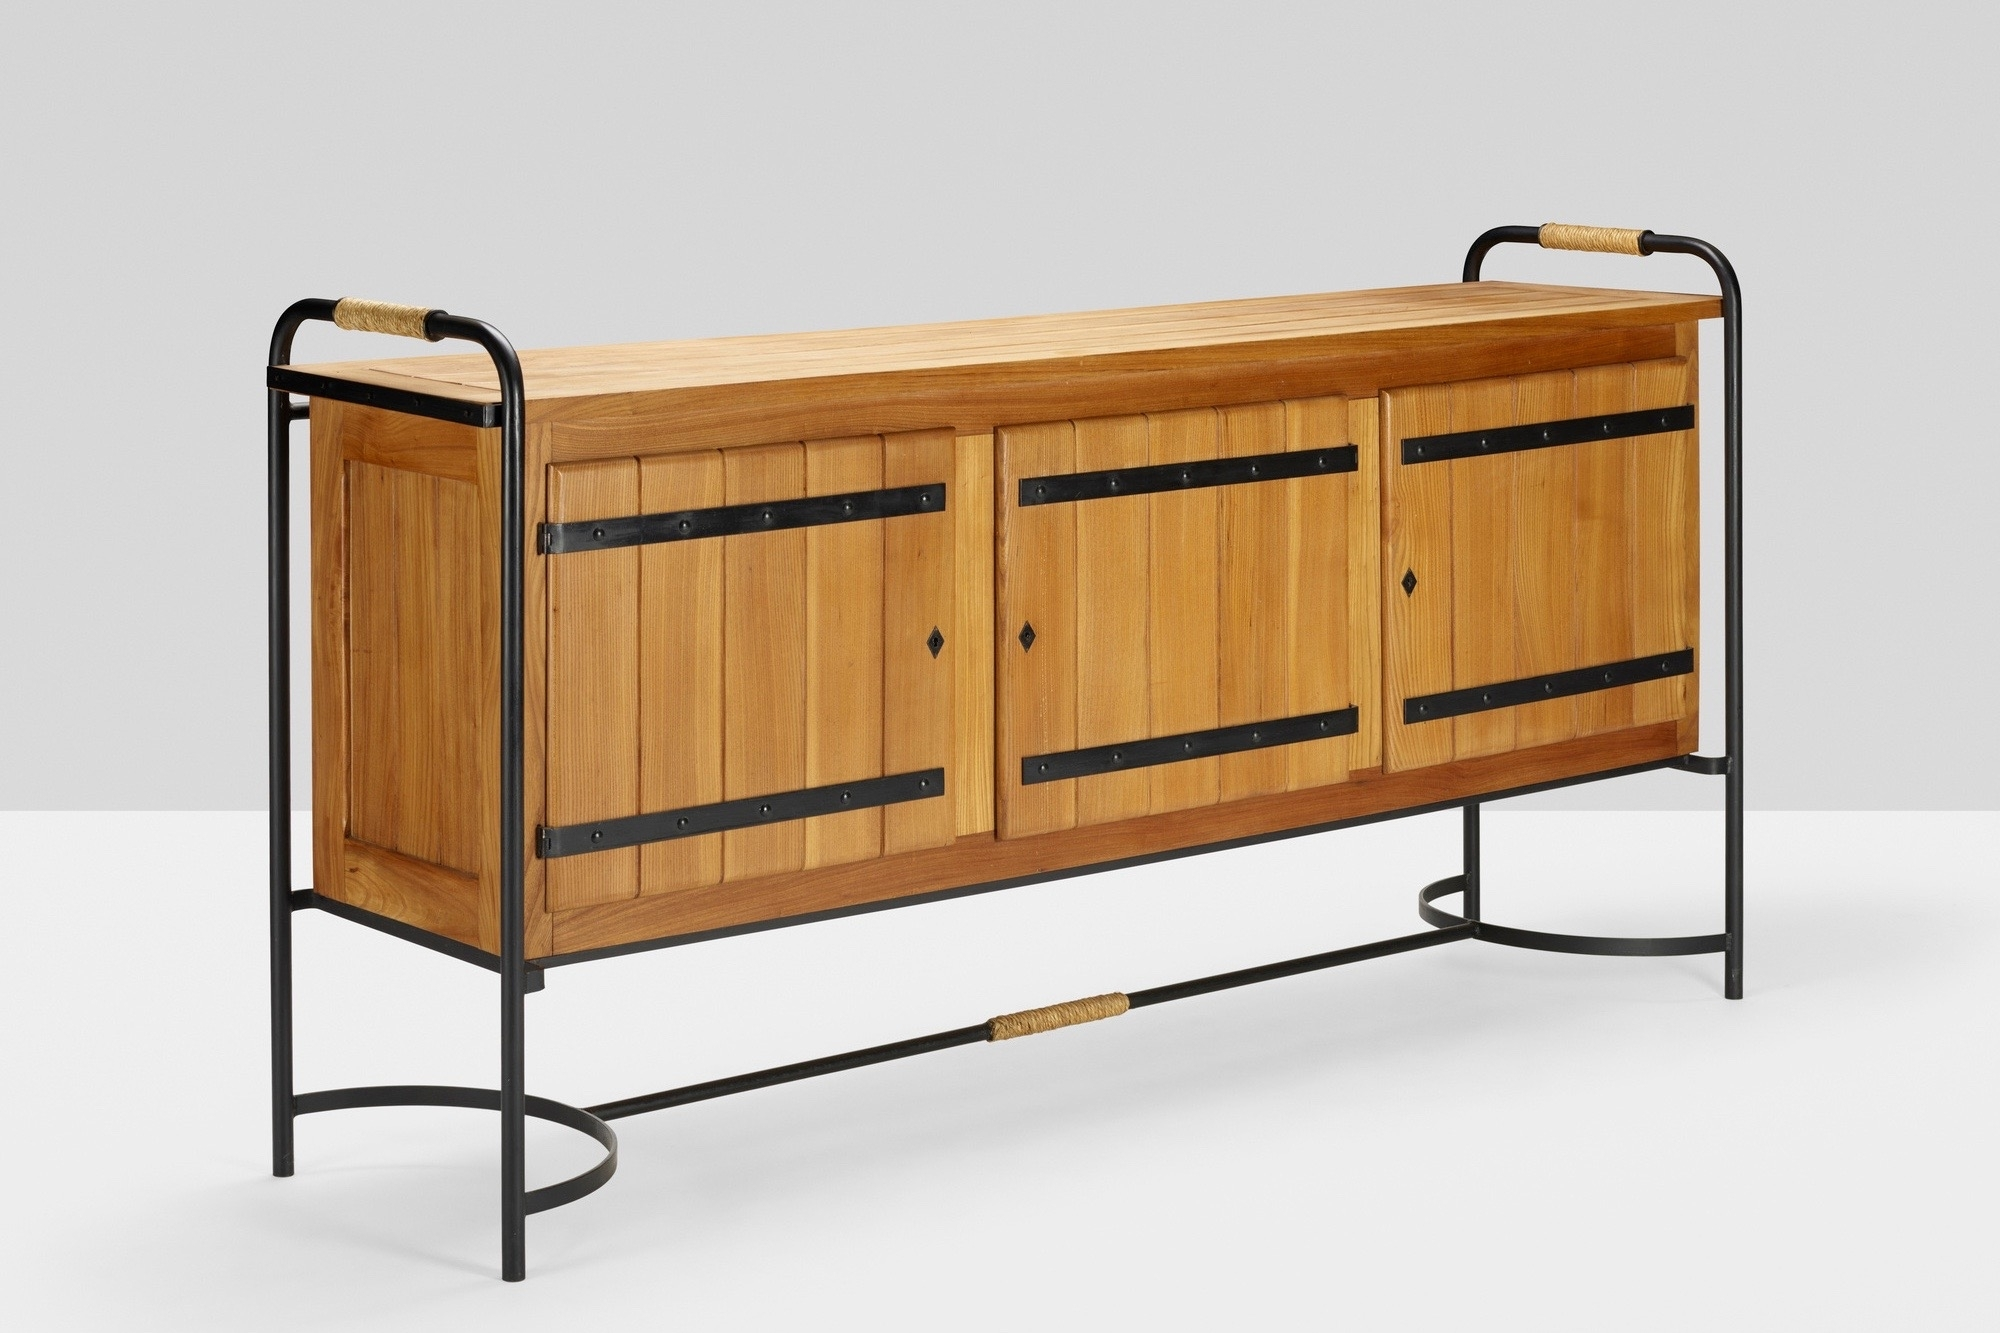 Cabinets & Sideboards – Vivamus intended for Iron Sideboards (Image 9 of 30)